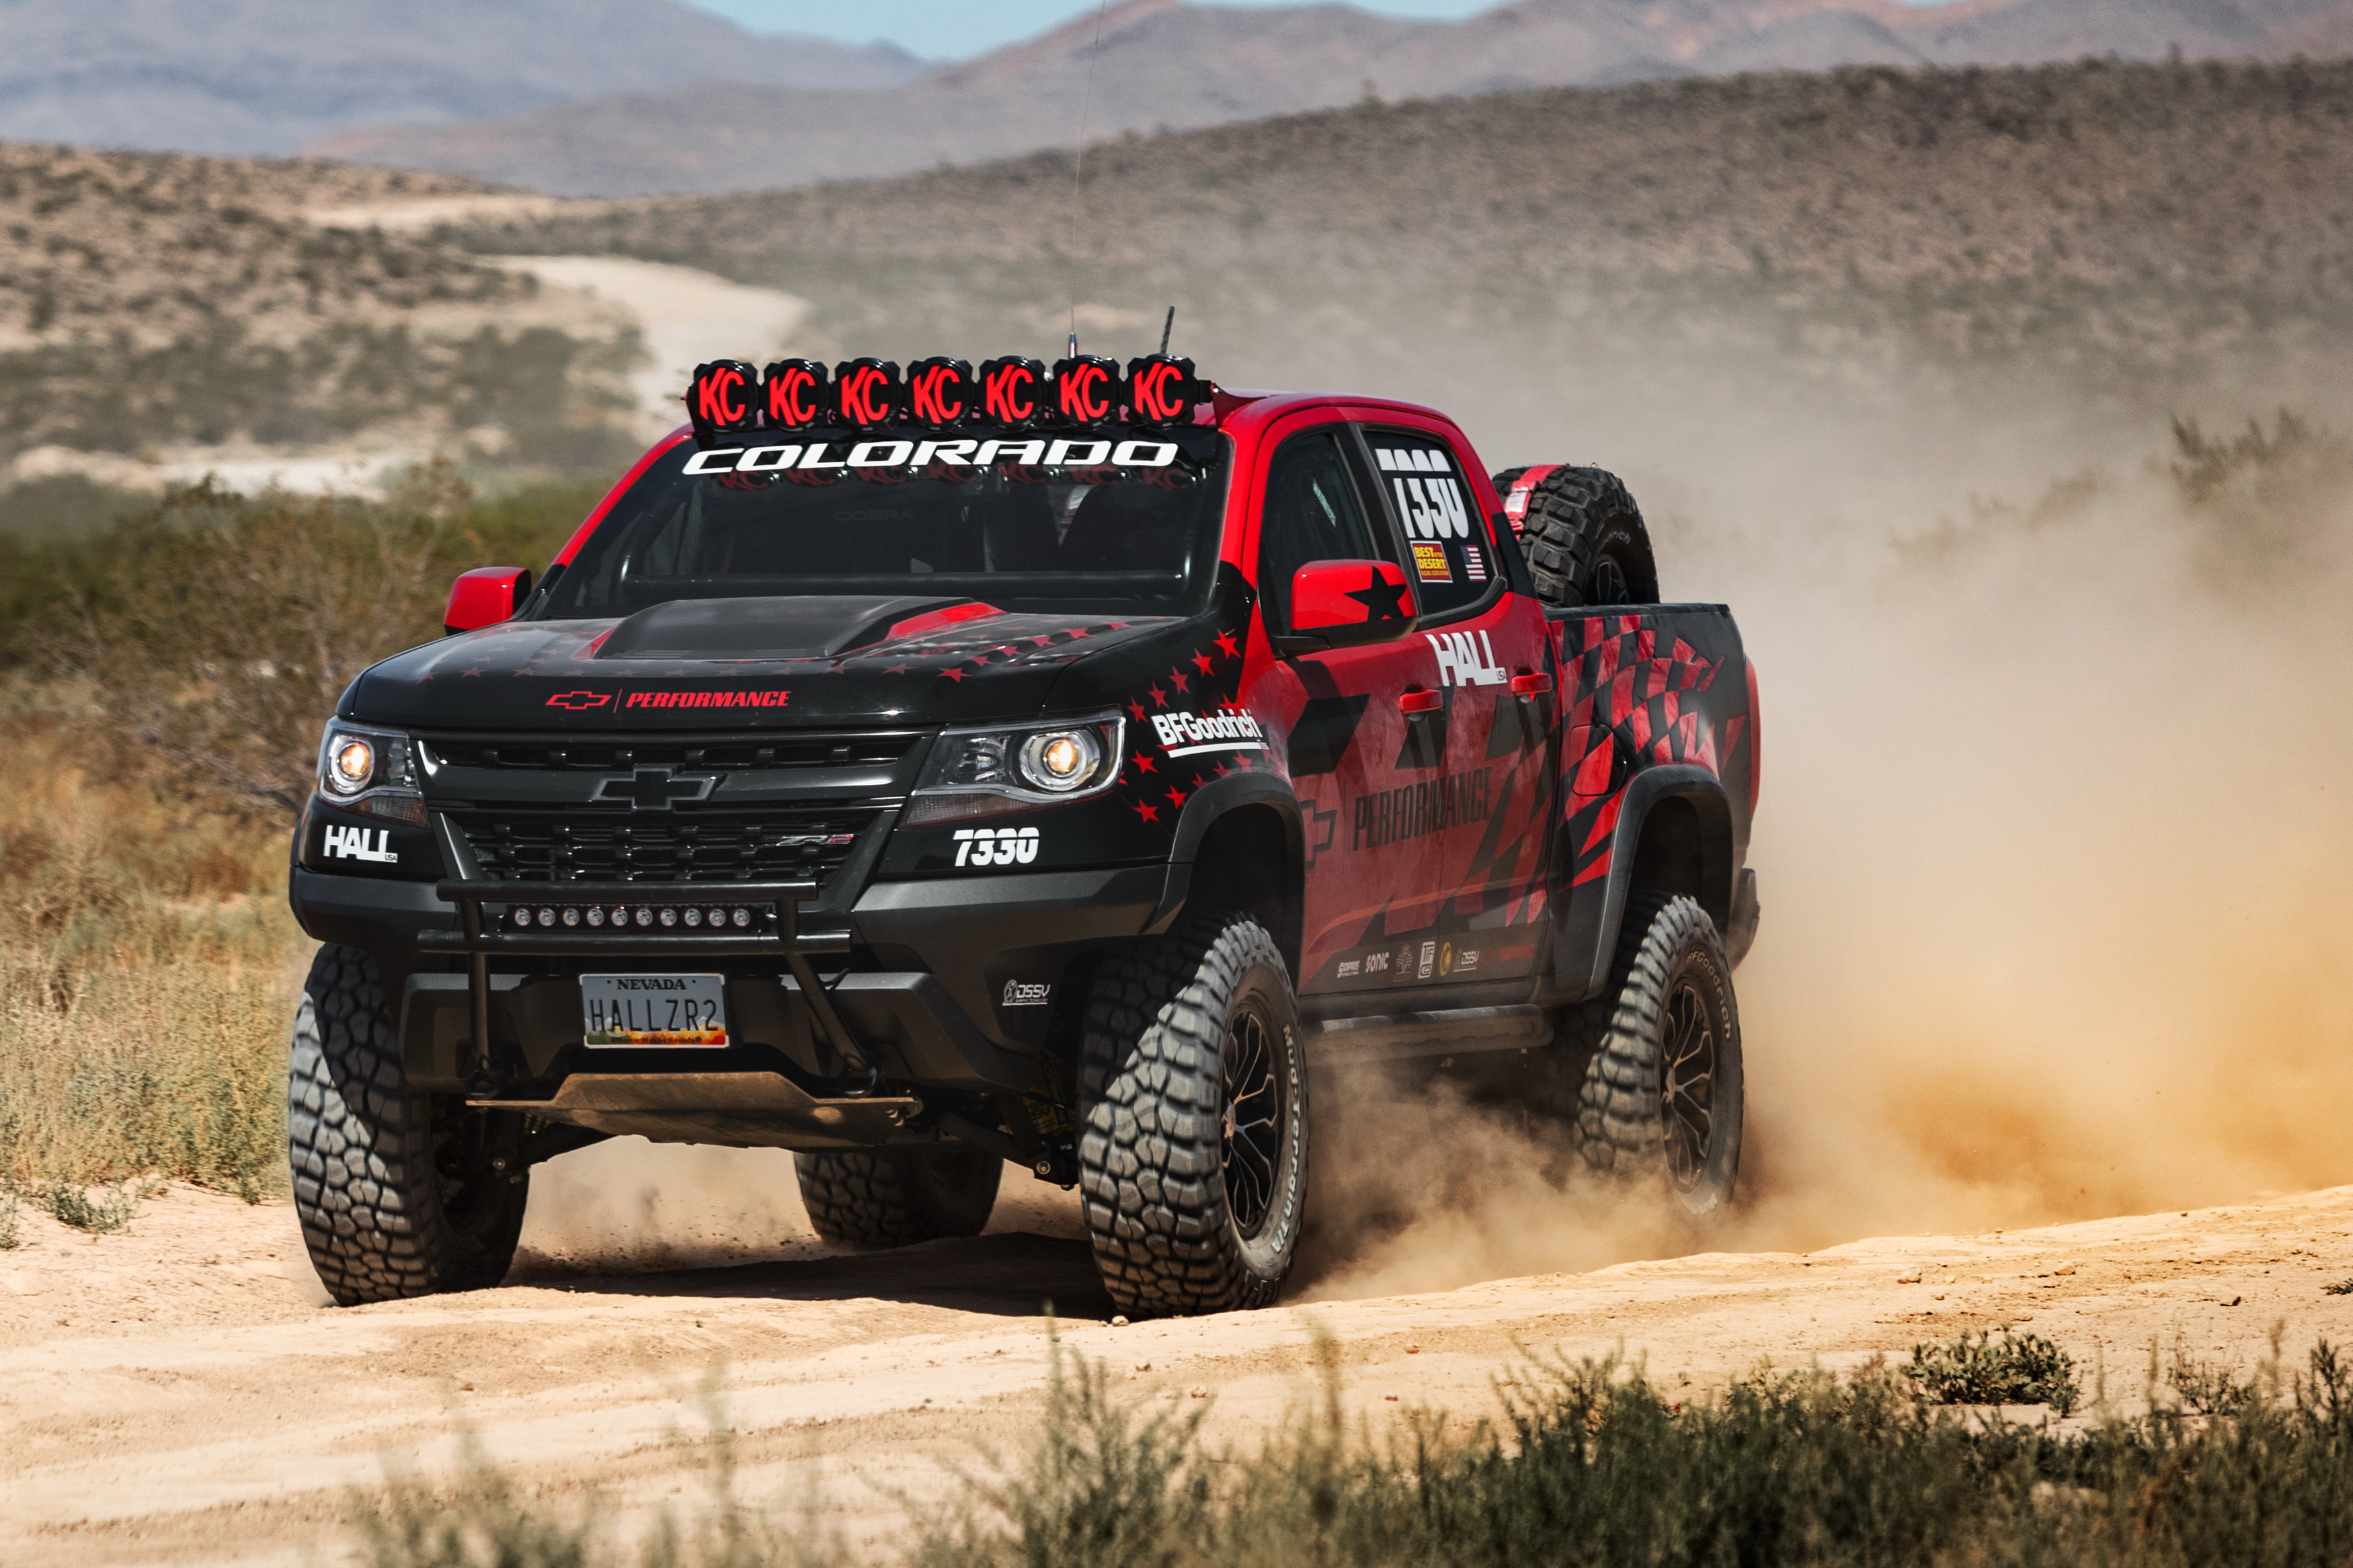 Colorado zr2 makes competition debut in america s longest off road race